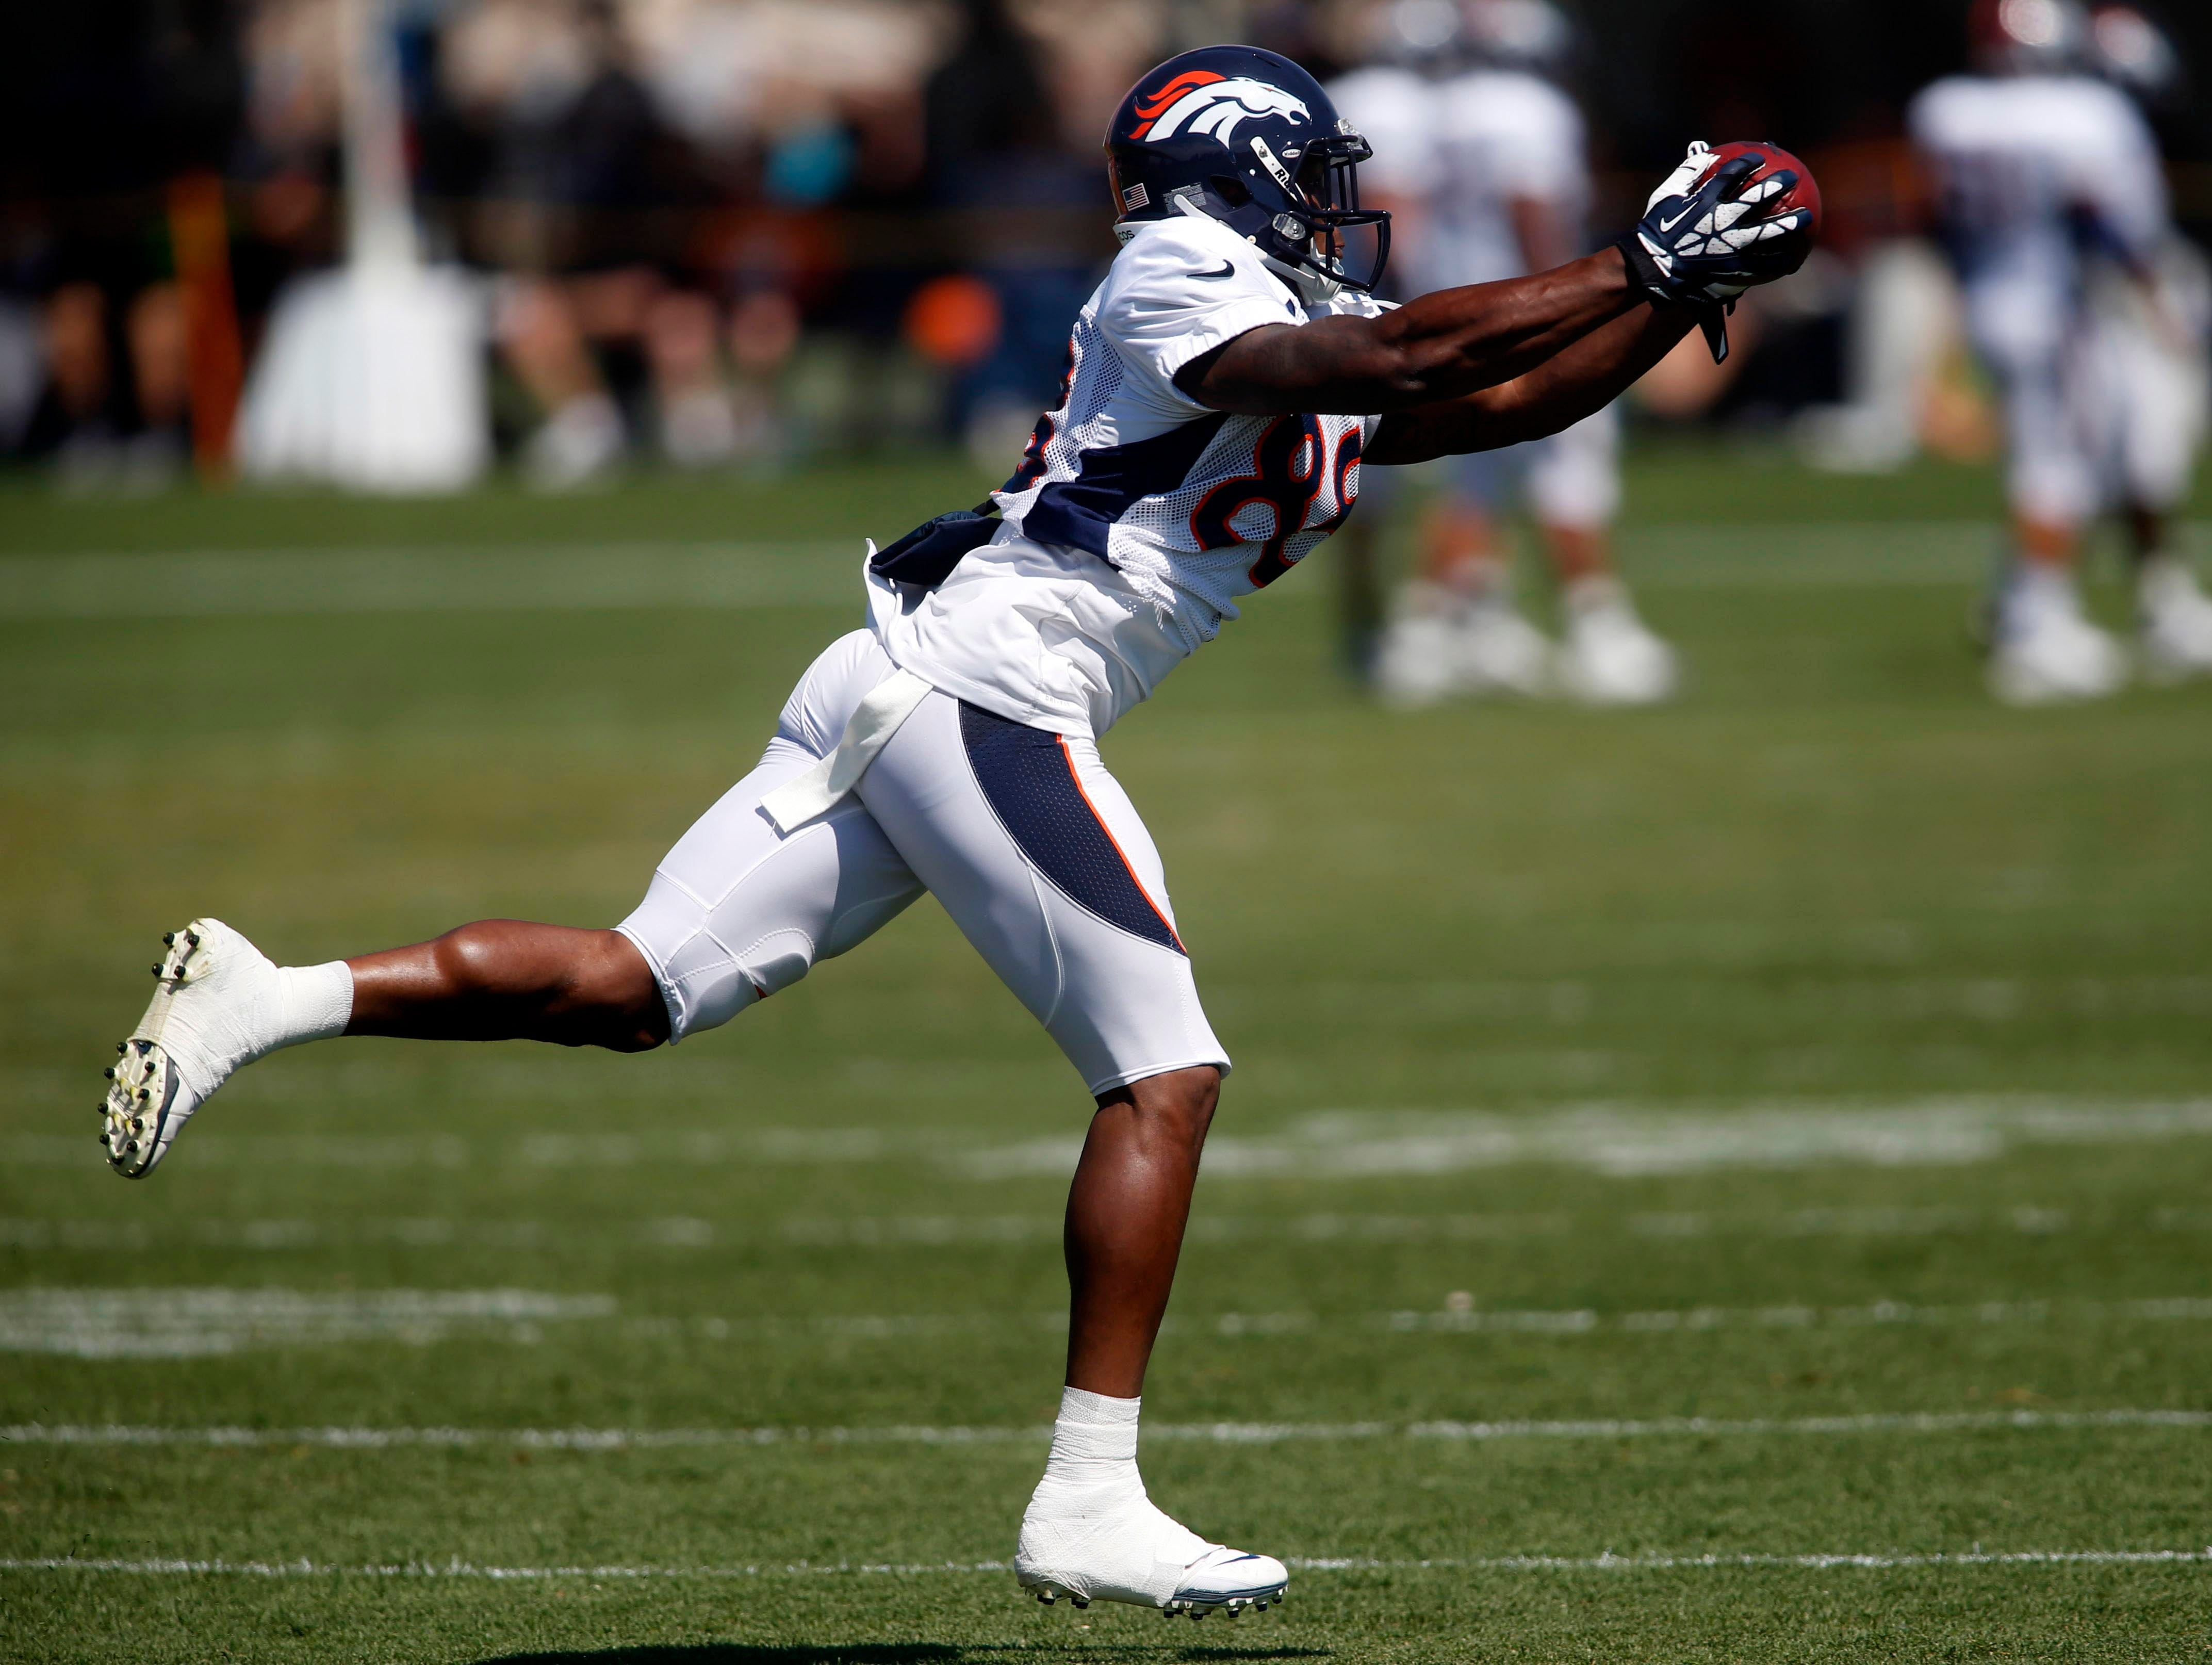 Denver Broncos wide receiver Demaryius Thomas catches a pass during training camp at the Broncos training facility on Aug. 12.